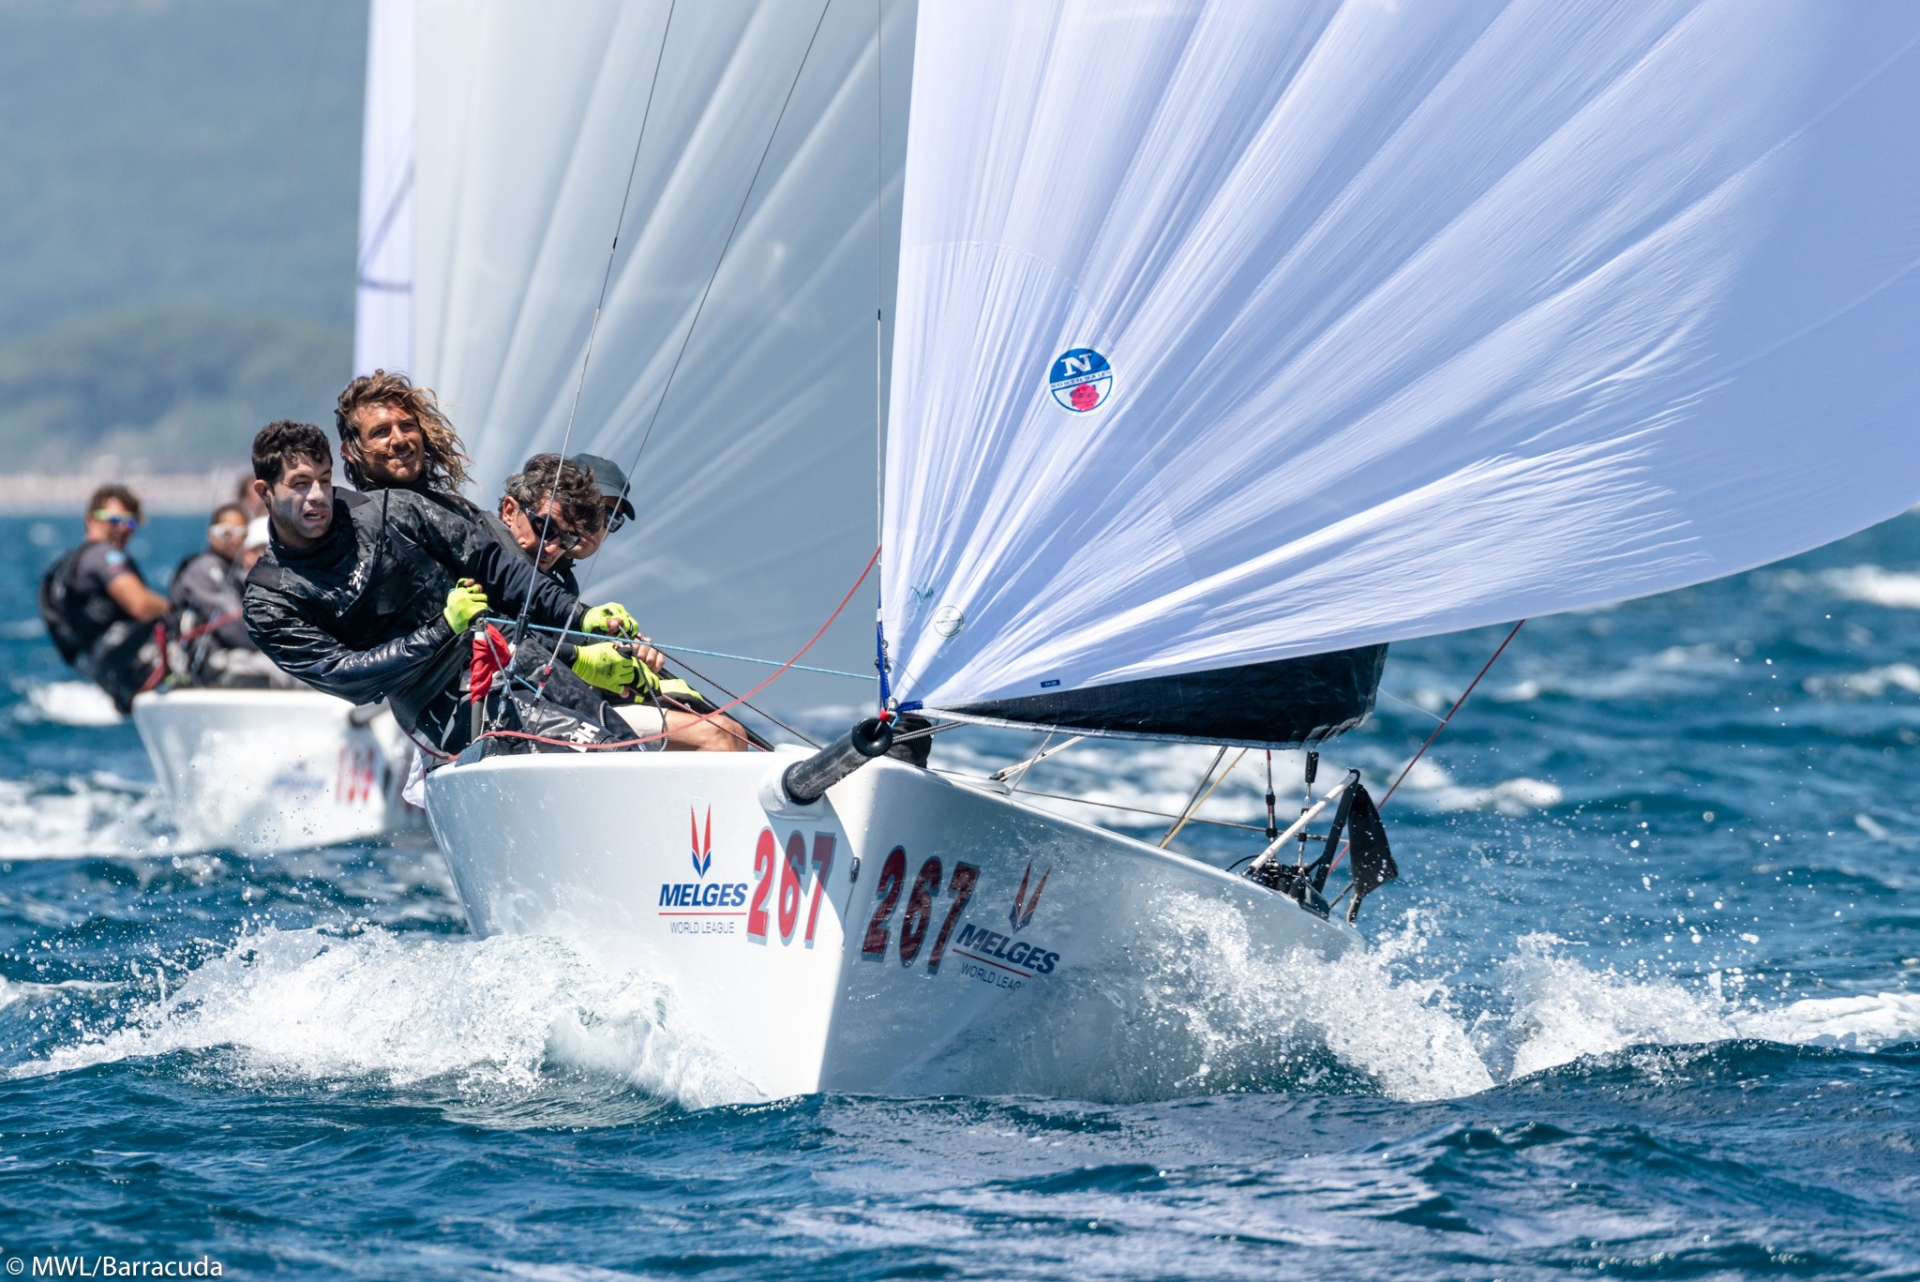 I soci YCCS alla Melges 20 World League - NEWS - Yacht Club Costa Smeralda